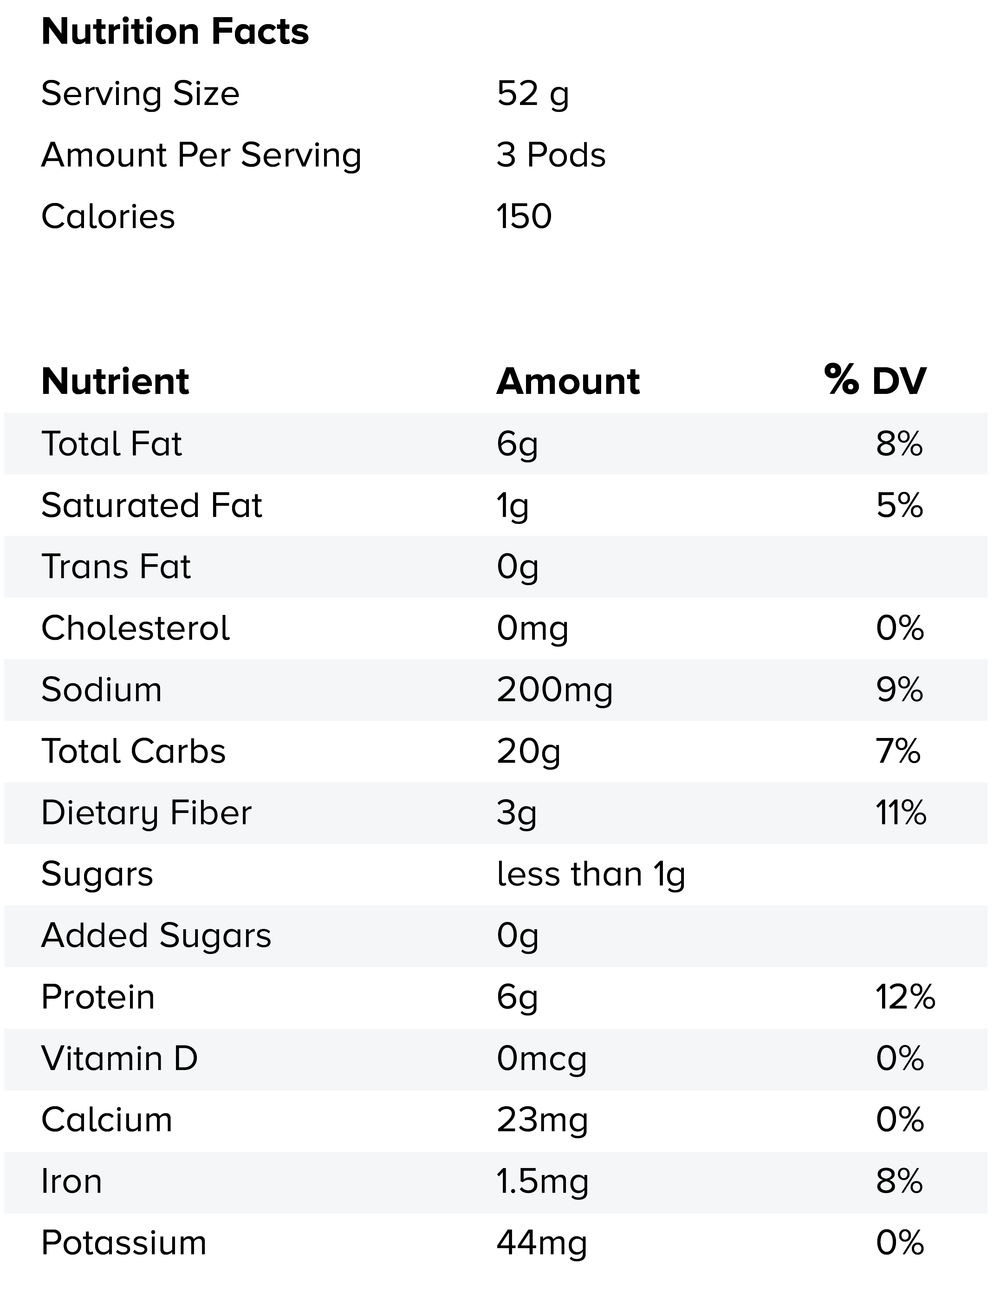 pod nutrition facts web 3-13-18-03.png